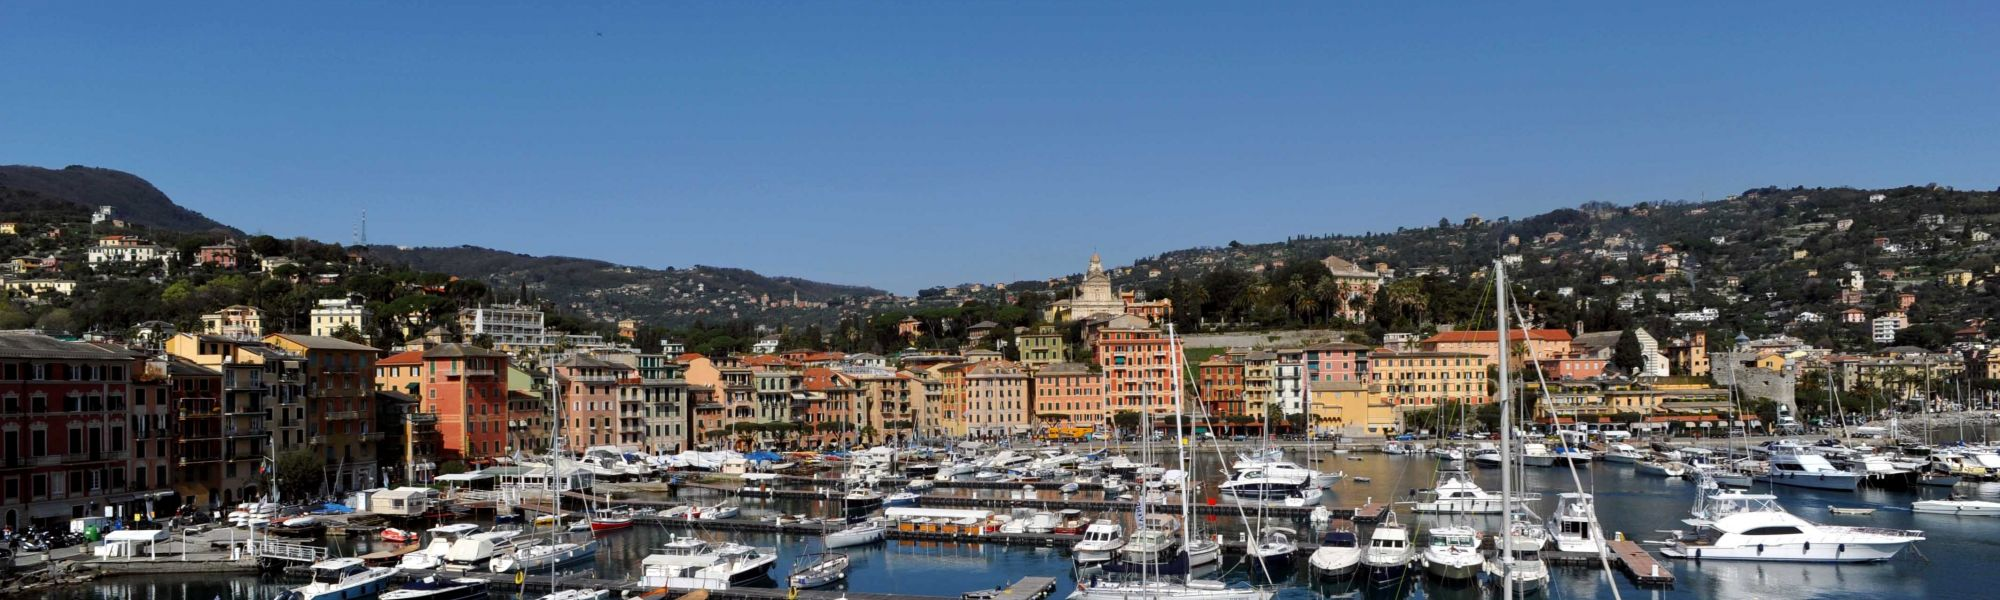 Hotels in Santa Margherita Ligure e Portofino